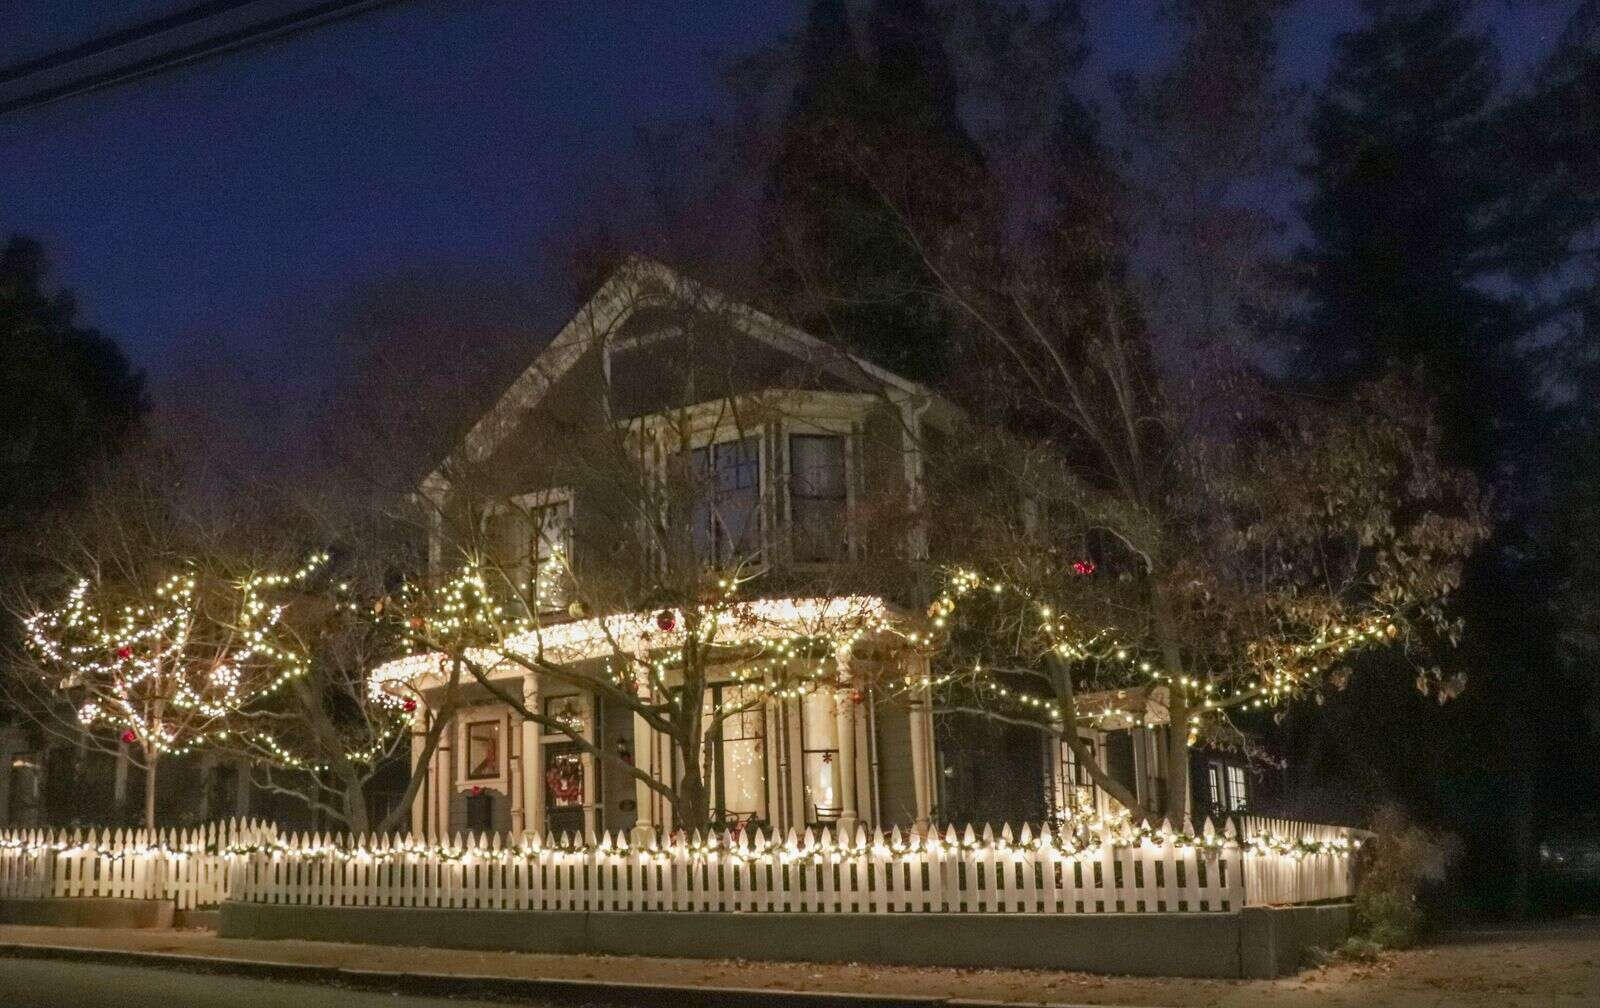 Local photographers joined Northern California Scenics, Kial James, Friday night with masks and social distancing for a photo walk around Nevada City in search of Christmas decorations. | Submitted by Sandra Boyd